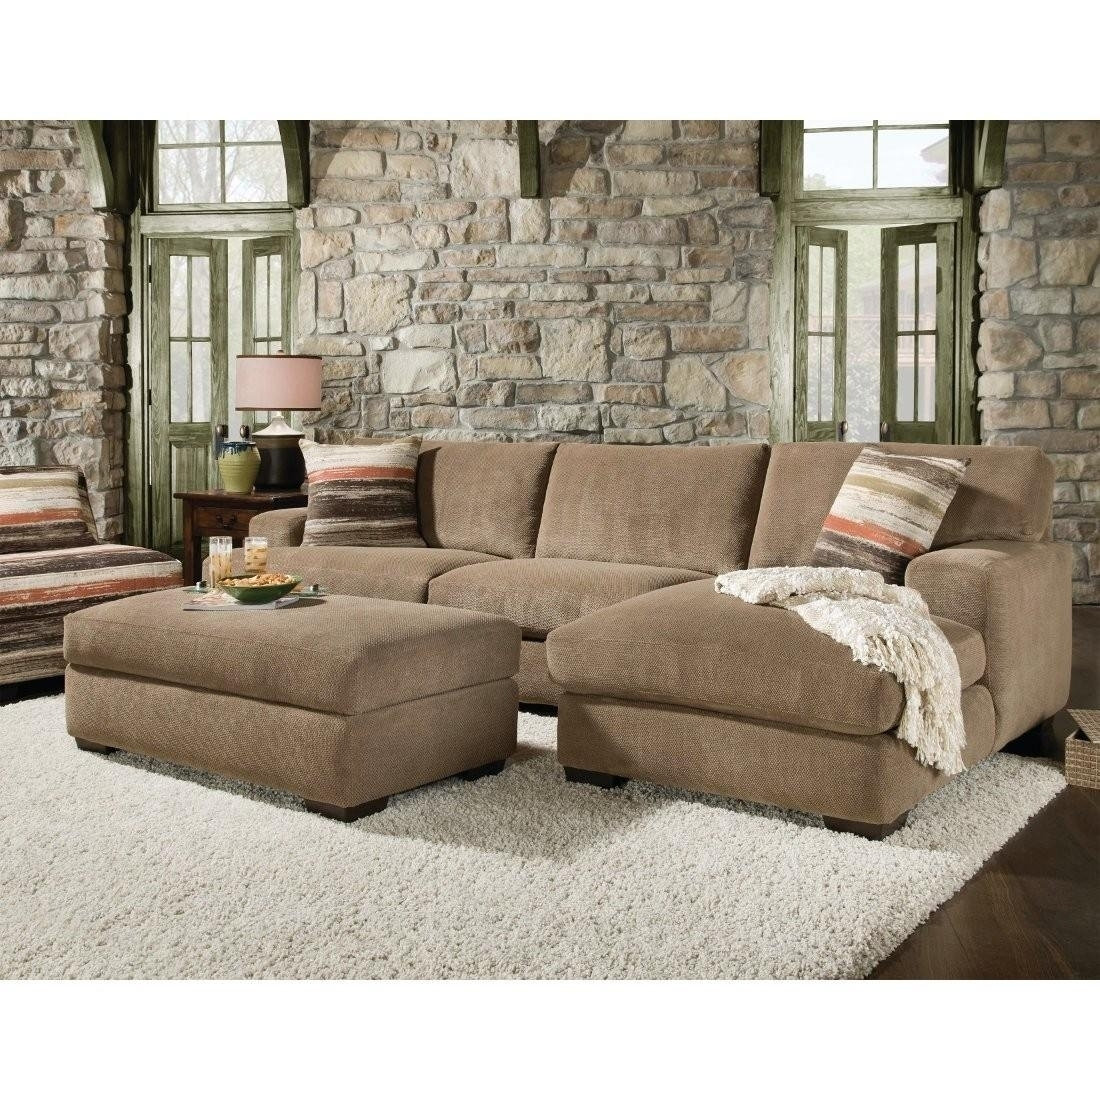 2018 Latest Down Filled Sofas And Sectionals | Sofa Ideas Intended For Down Filled Sofas (Photo 3 of 10)